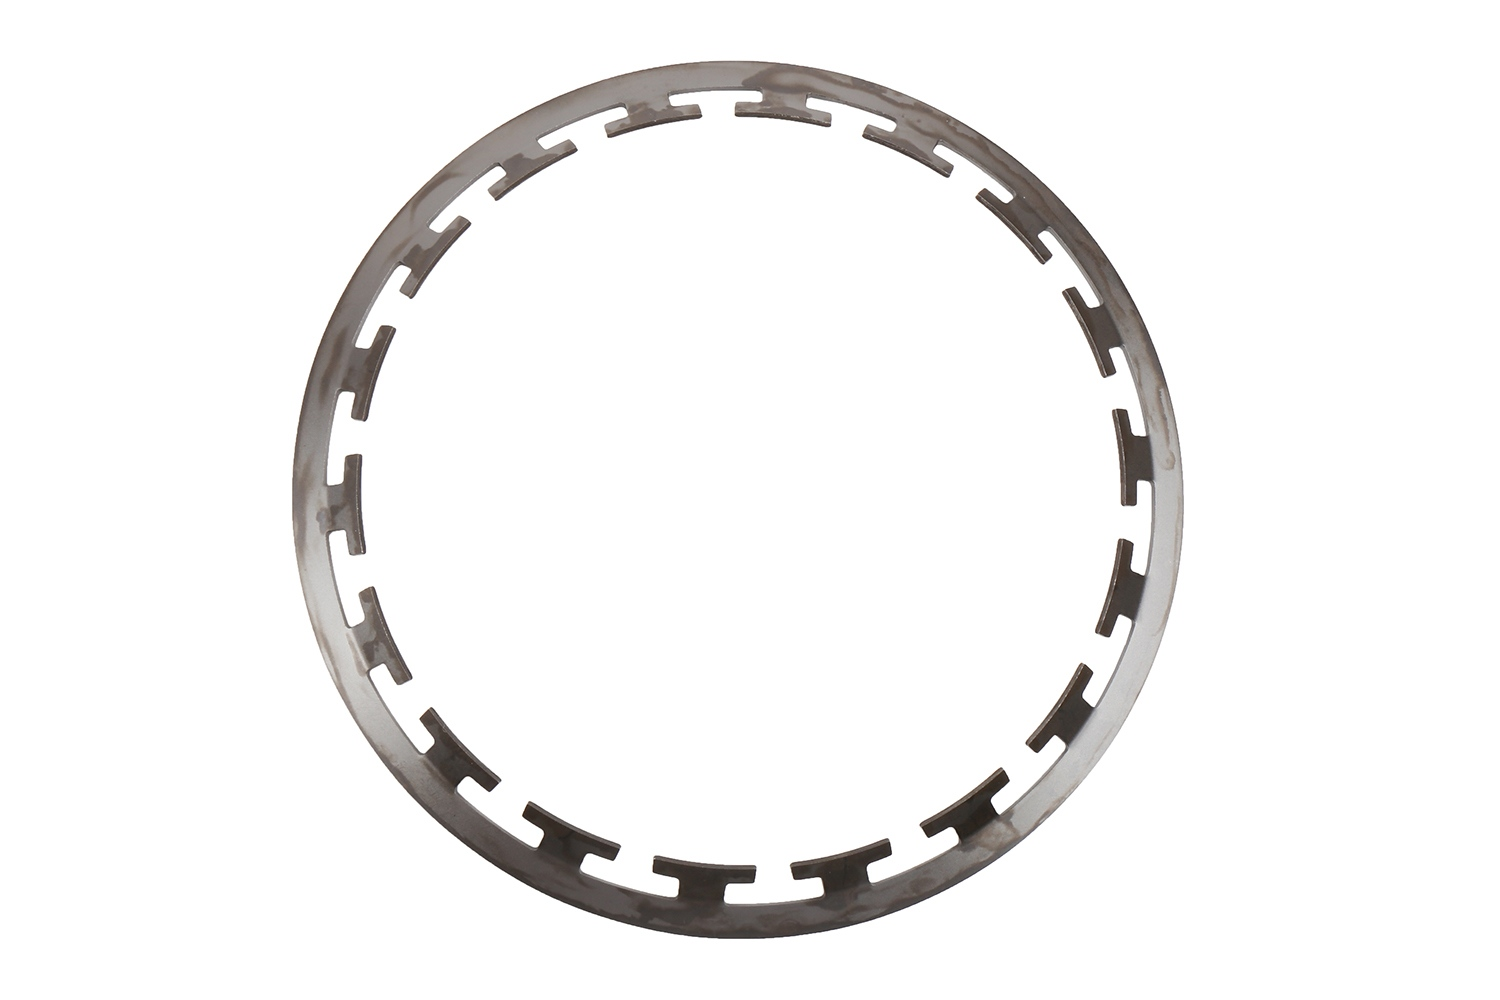 ACDELCO GM ORIGINAL EQUIPMENT - Automatic Transmission Clutch Spring (Low / Reverse) - DCB 24230814